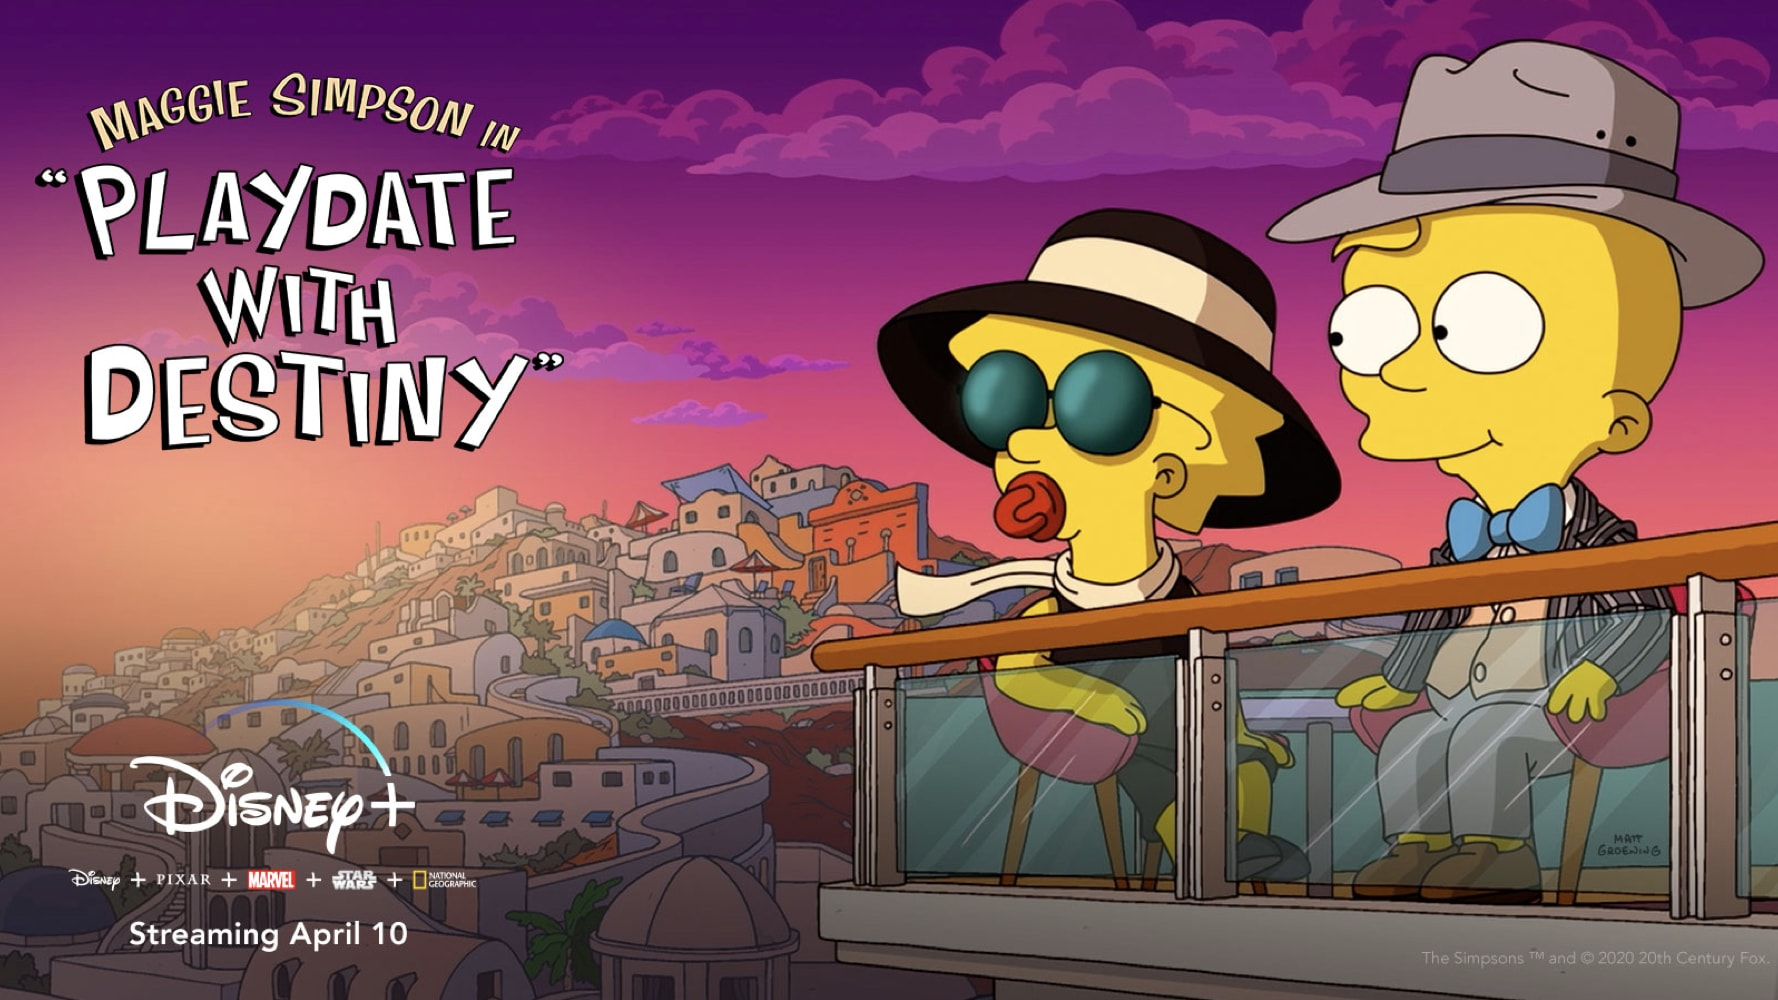 """The Simpsons"" Animated Short Film ""Maggie Simpson in 'Playdate with Destiny'"" Streams Tomorrow on Disney+"